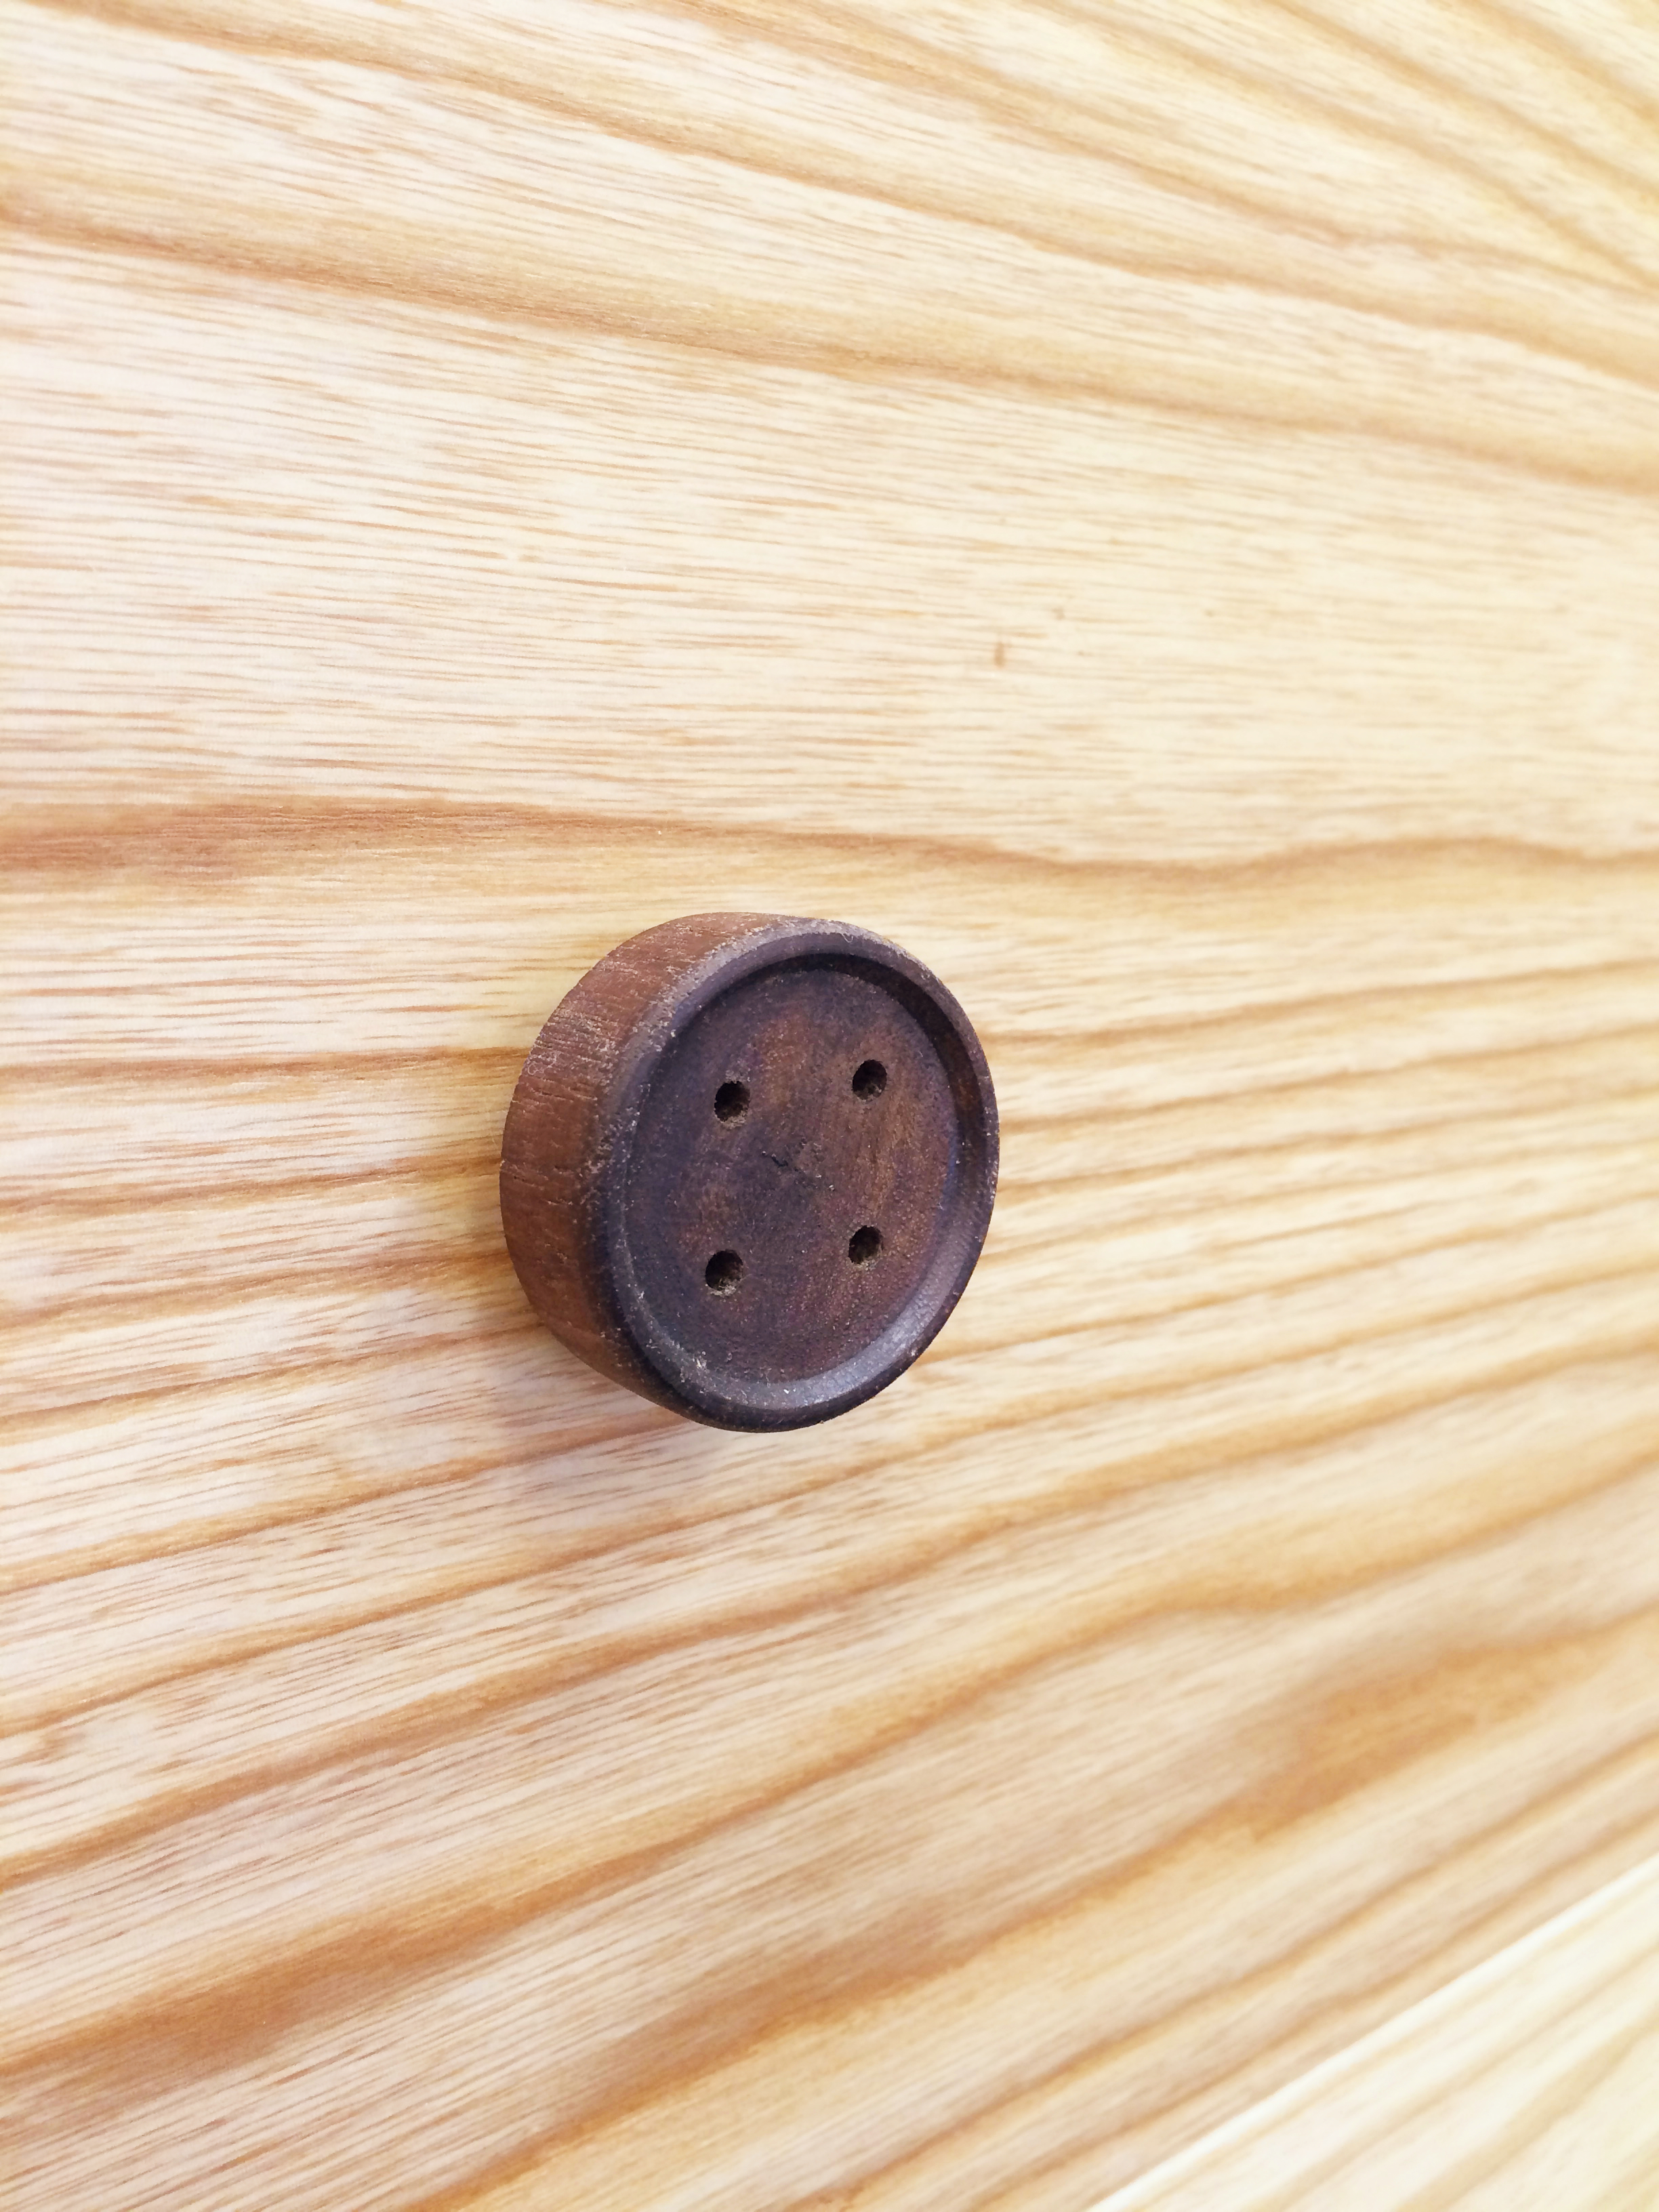 Button Detail_F.jpg